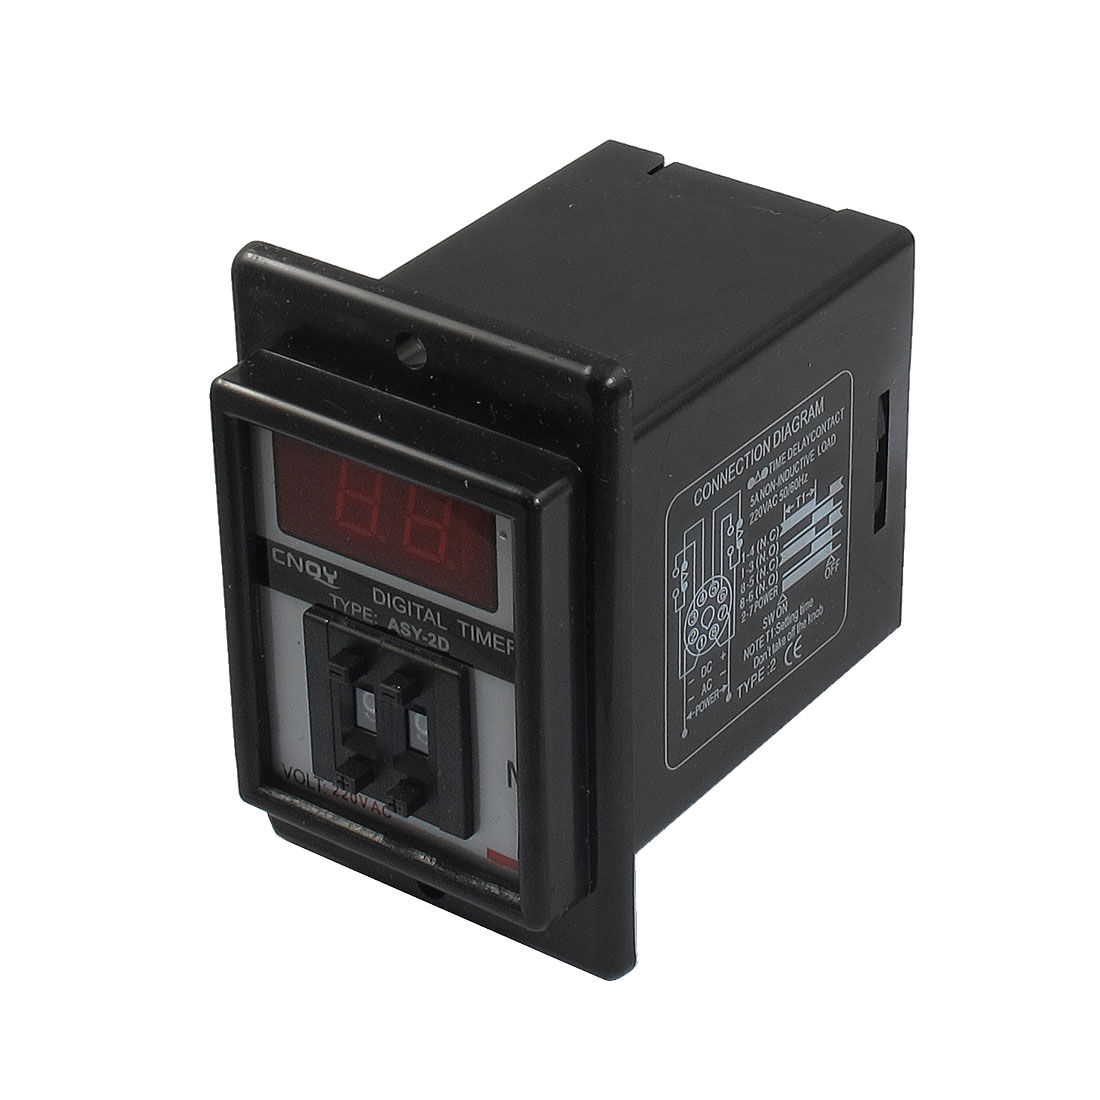 AC 220V 1-99 Minute Digital Timer Time Delay Relay 8 Pin ASY-2D